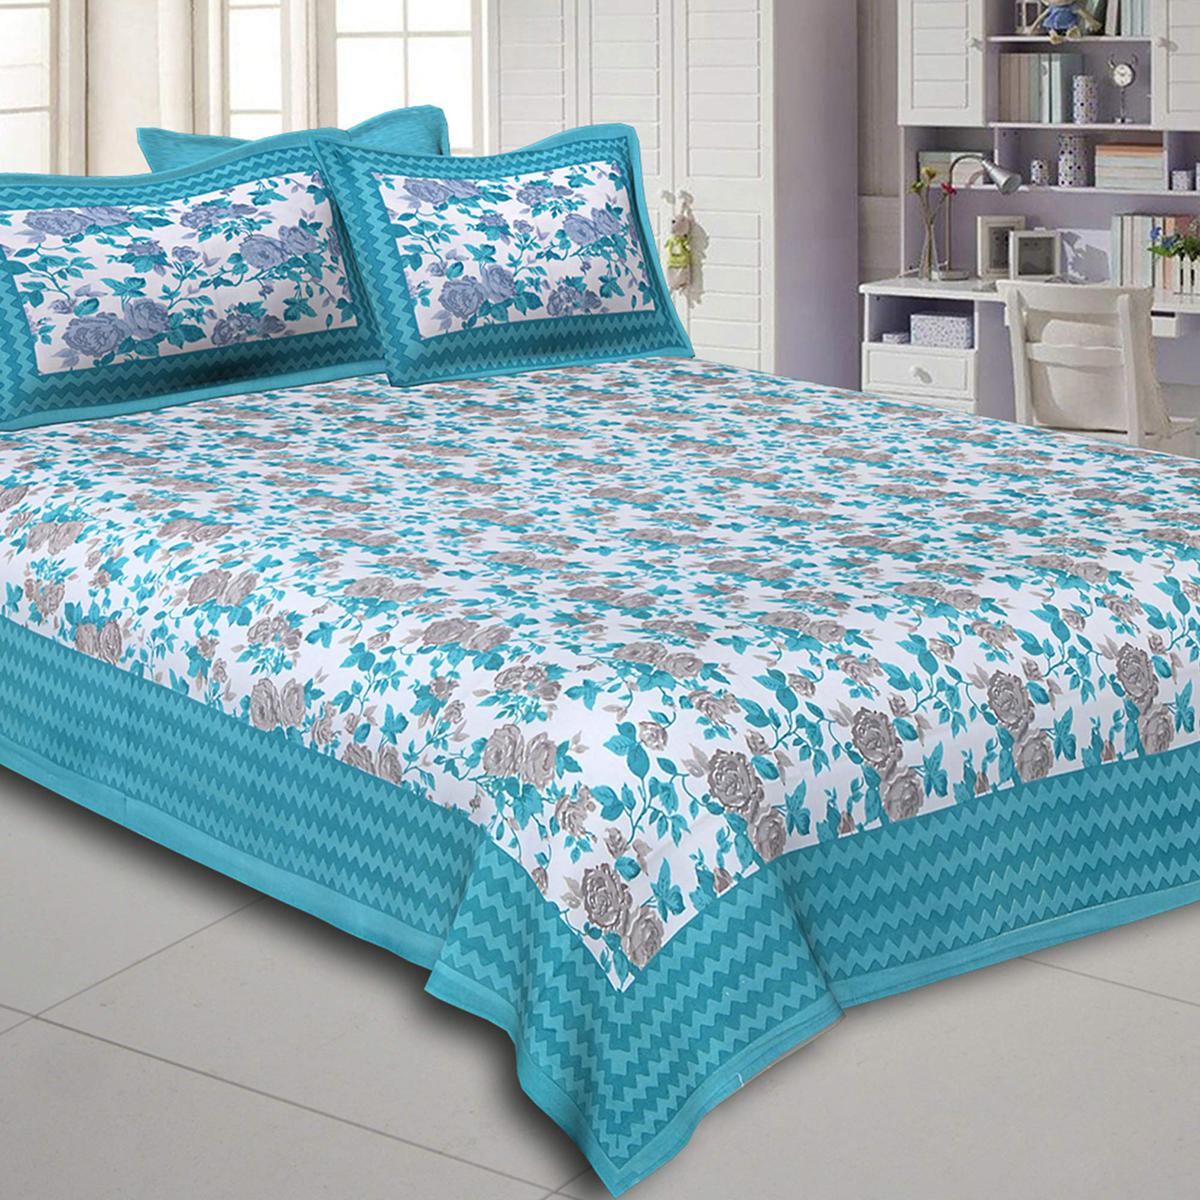 Jazzy Sky Blue Colored Floral Printed Pure Cotton Double Bedsheet With Pillow Cover Set